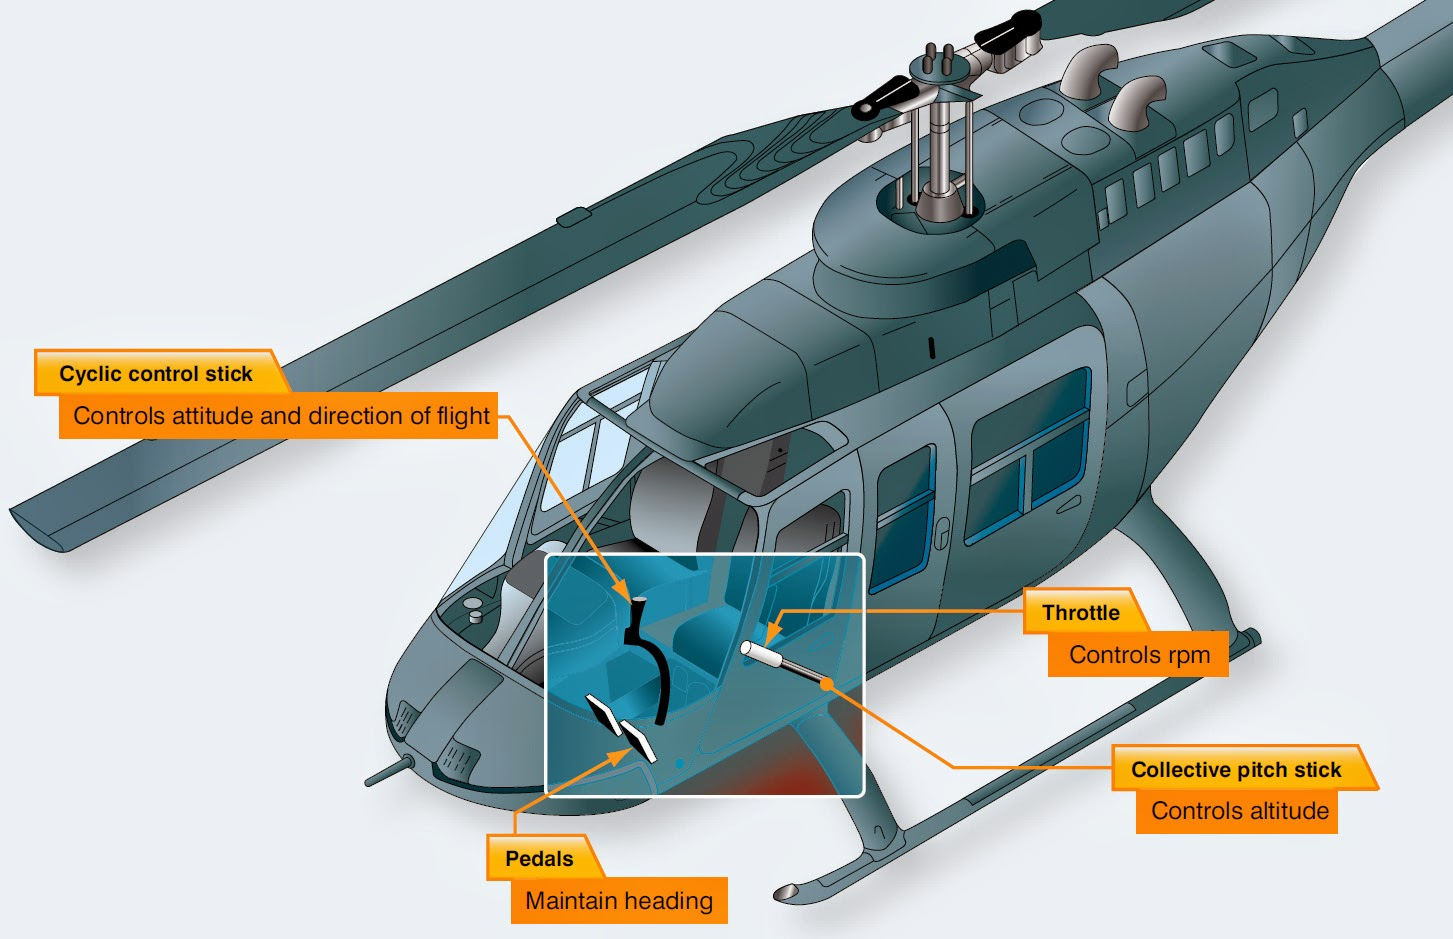 helicopter cyclic with Rotary Wing Aircraft Assembly And 14 on Helicopter8 besides Eflite blade helio b furthermore Helicopter Ak1 3 moreover Rotary Wing Aircraft Assembly And 14 furthermore Watch.